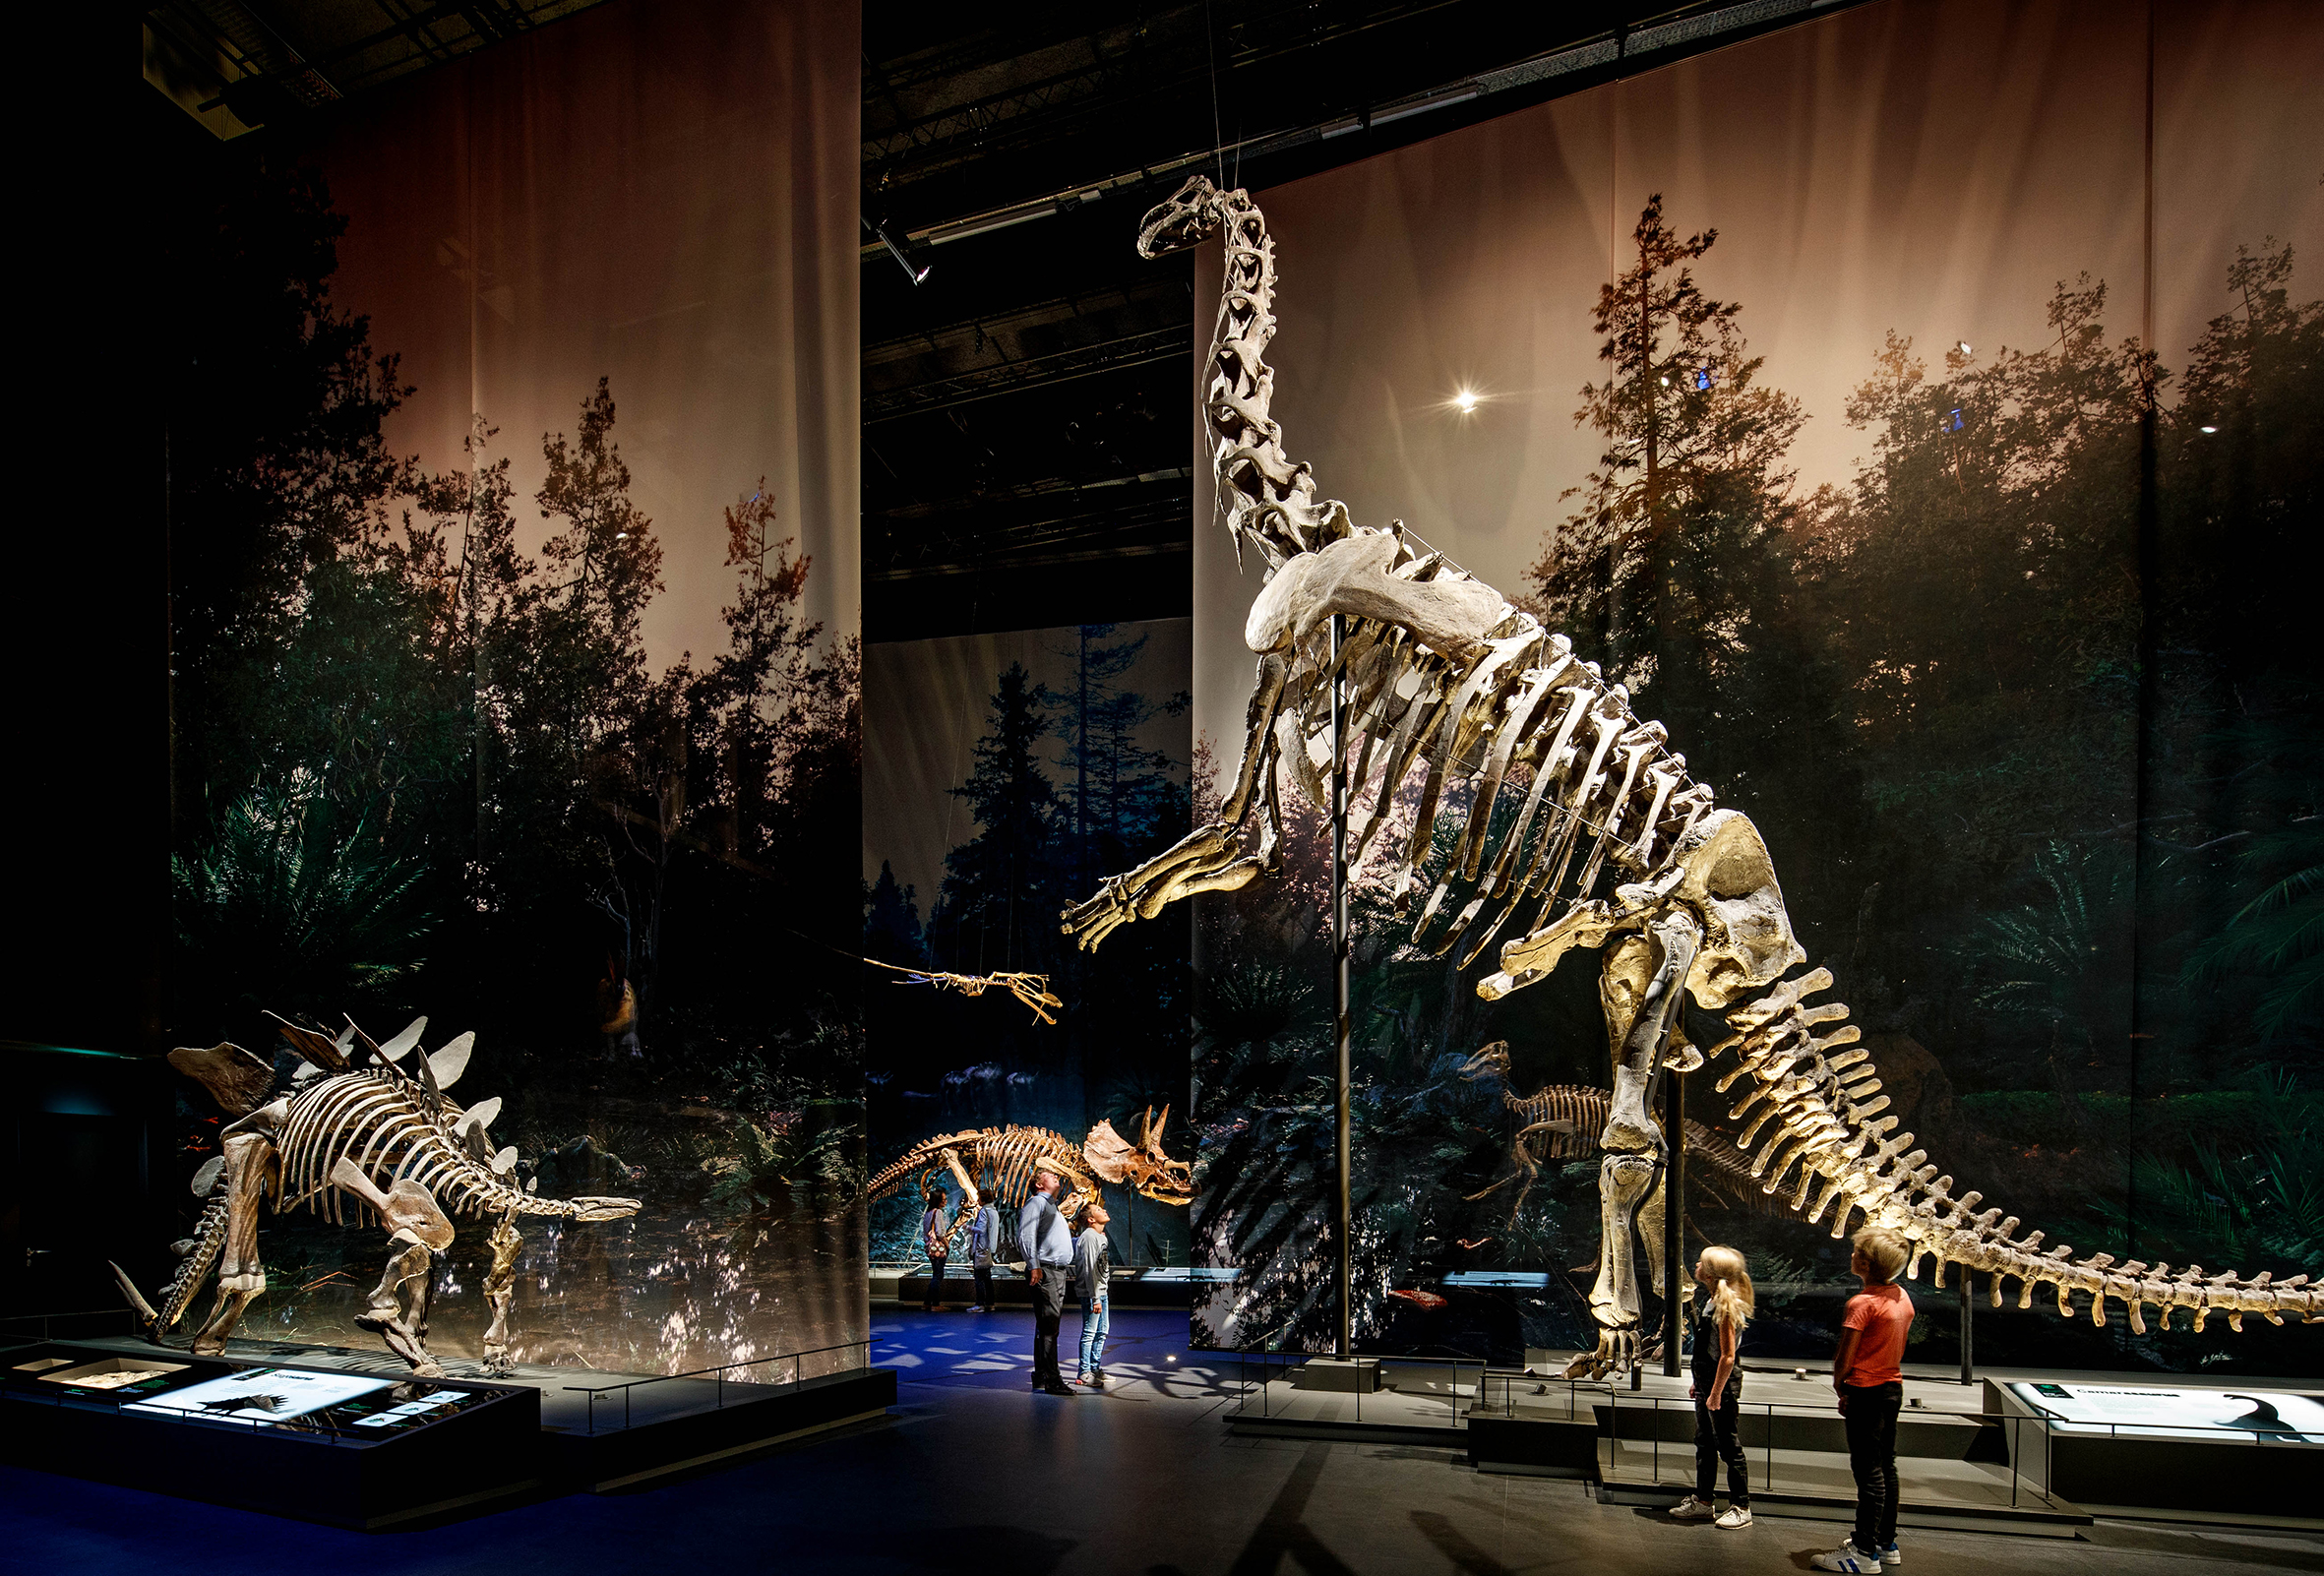 The 2021 European Museum of the Year was won by the Naturalis Biodiversity Center in Leiden, Netherlands